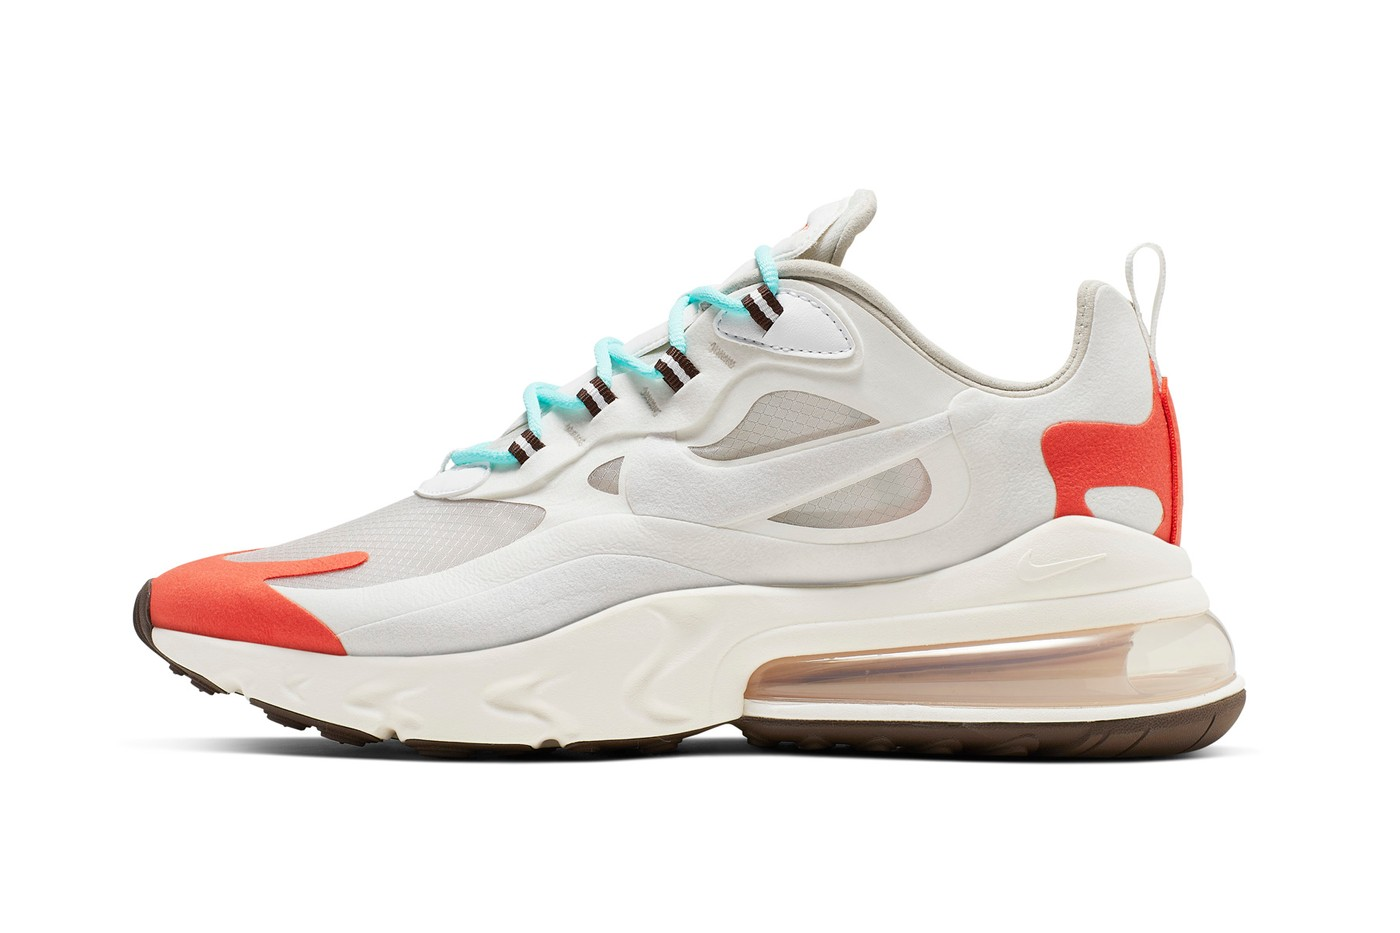 new concept db219 26b5c Introducing the Nike Air Max 270 React | The Source